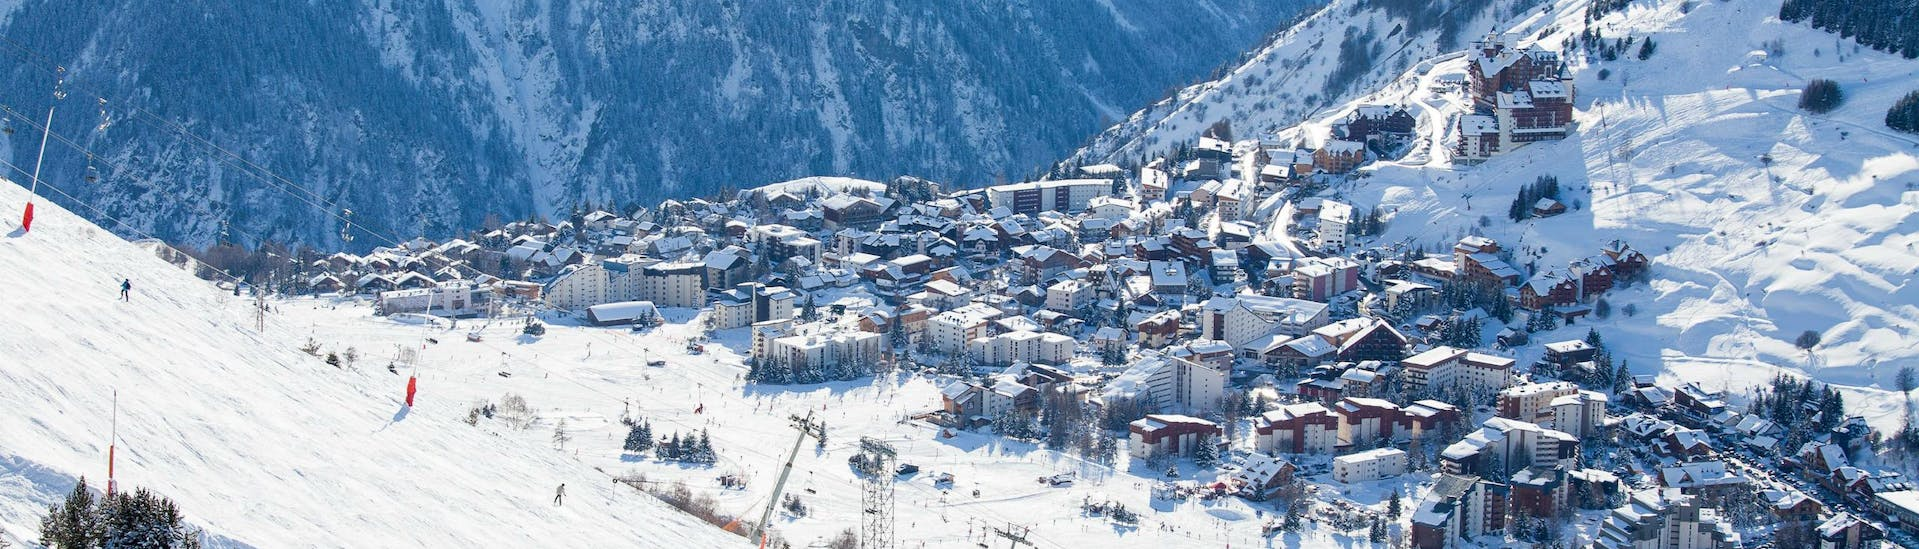 An image of France's second oldest ski resort Les Deux Alpes, where local ski schools offer ski lessons for those who want to learn to ski.